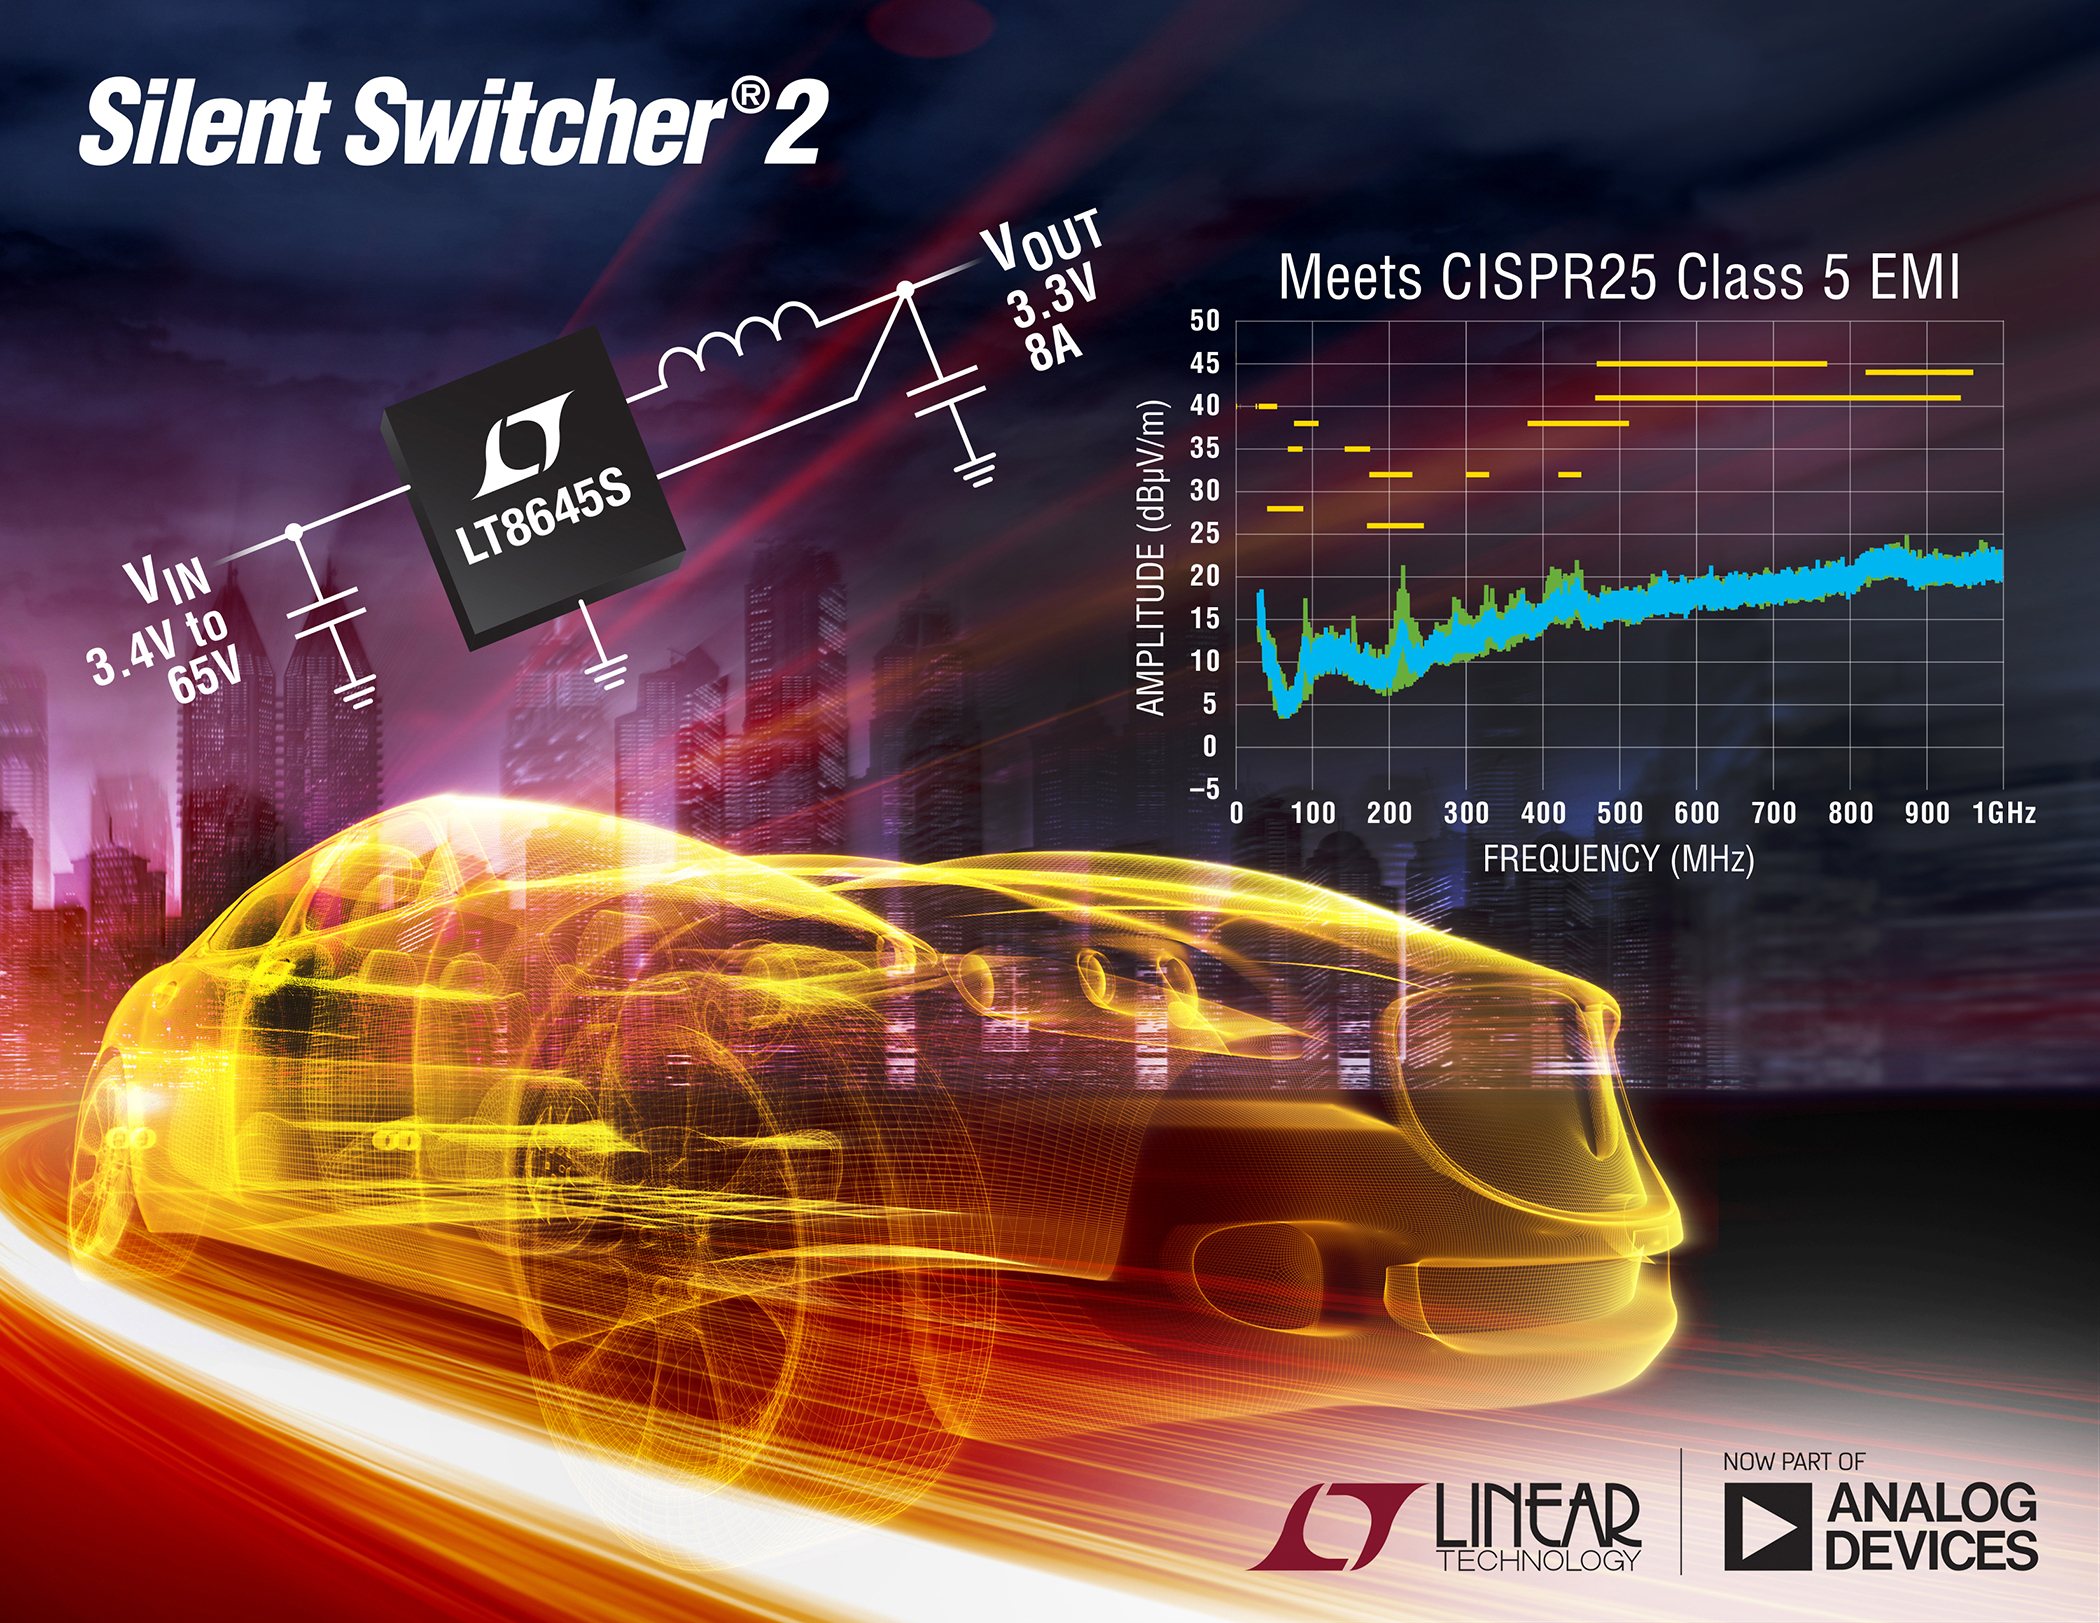 65V, 8A (IOUT), Synchronous Step-Down Silent Switcher 2 Delivers 94% Efficiency at 2MHz & Ultralow EMI/EMC Emissions